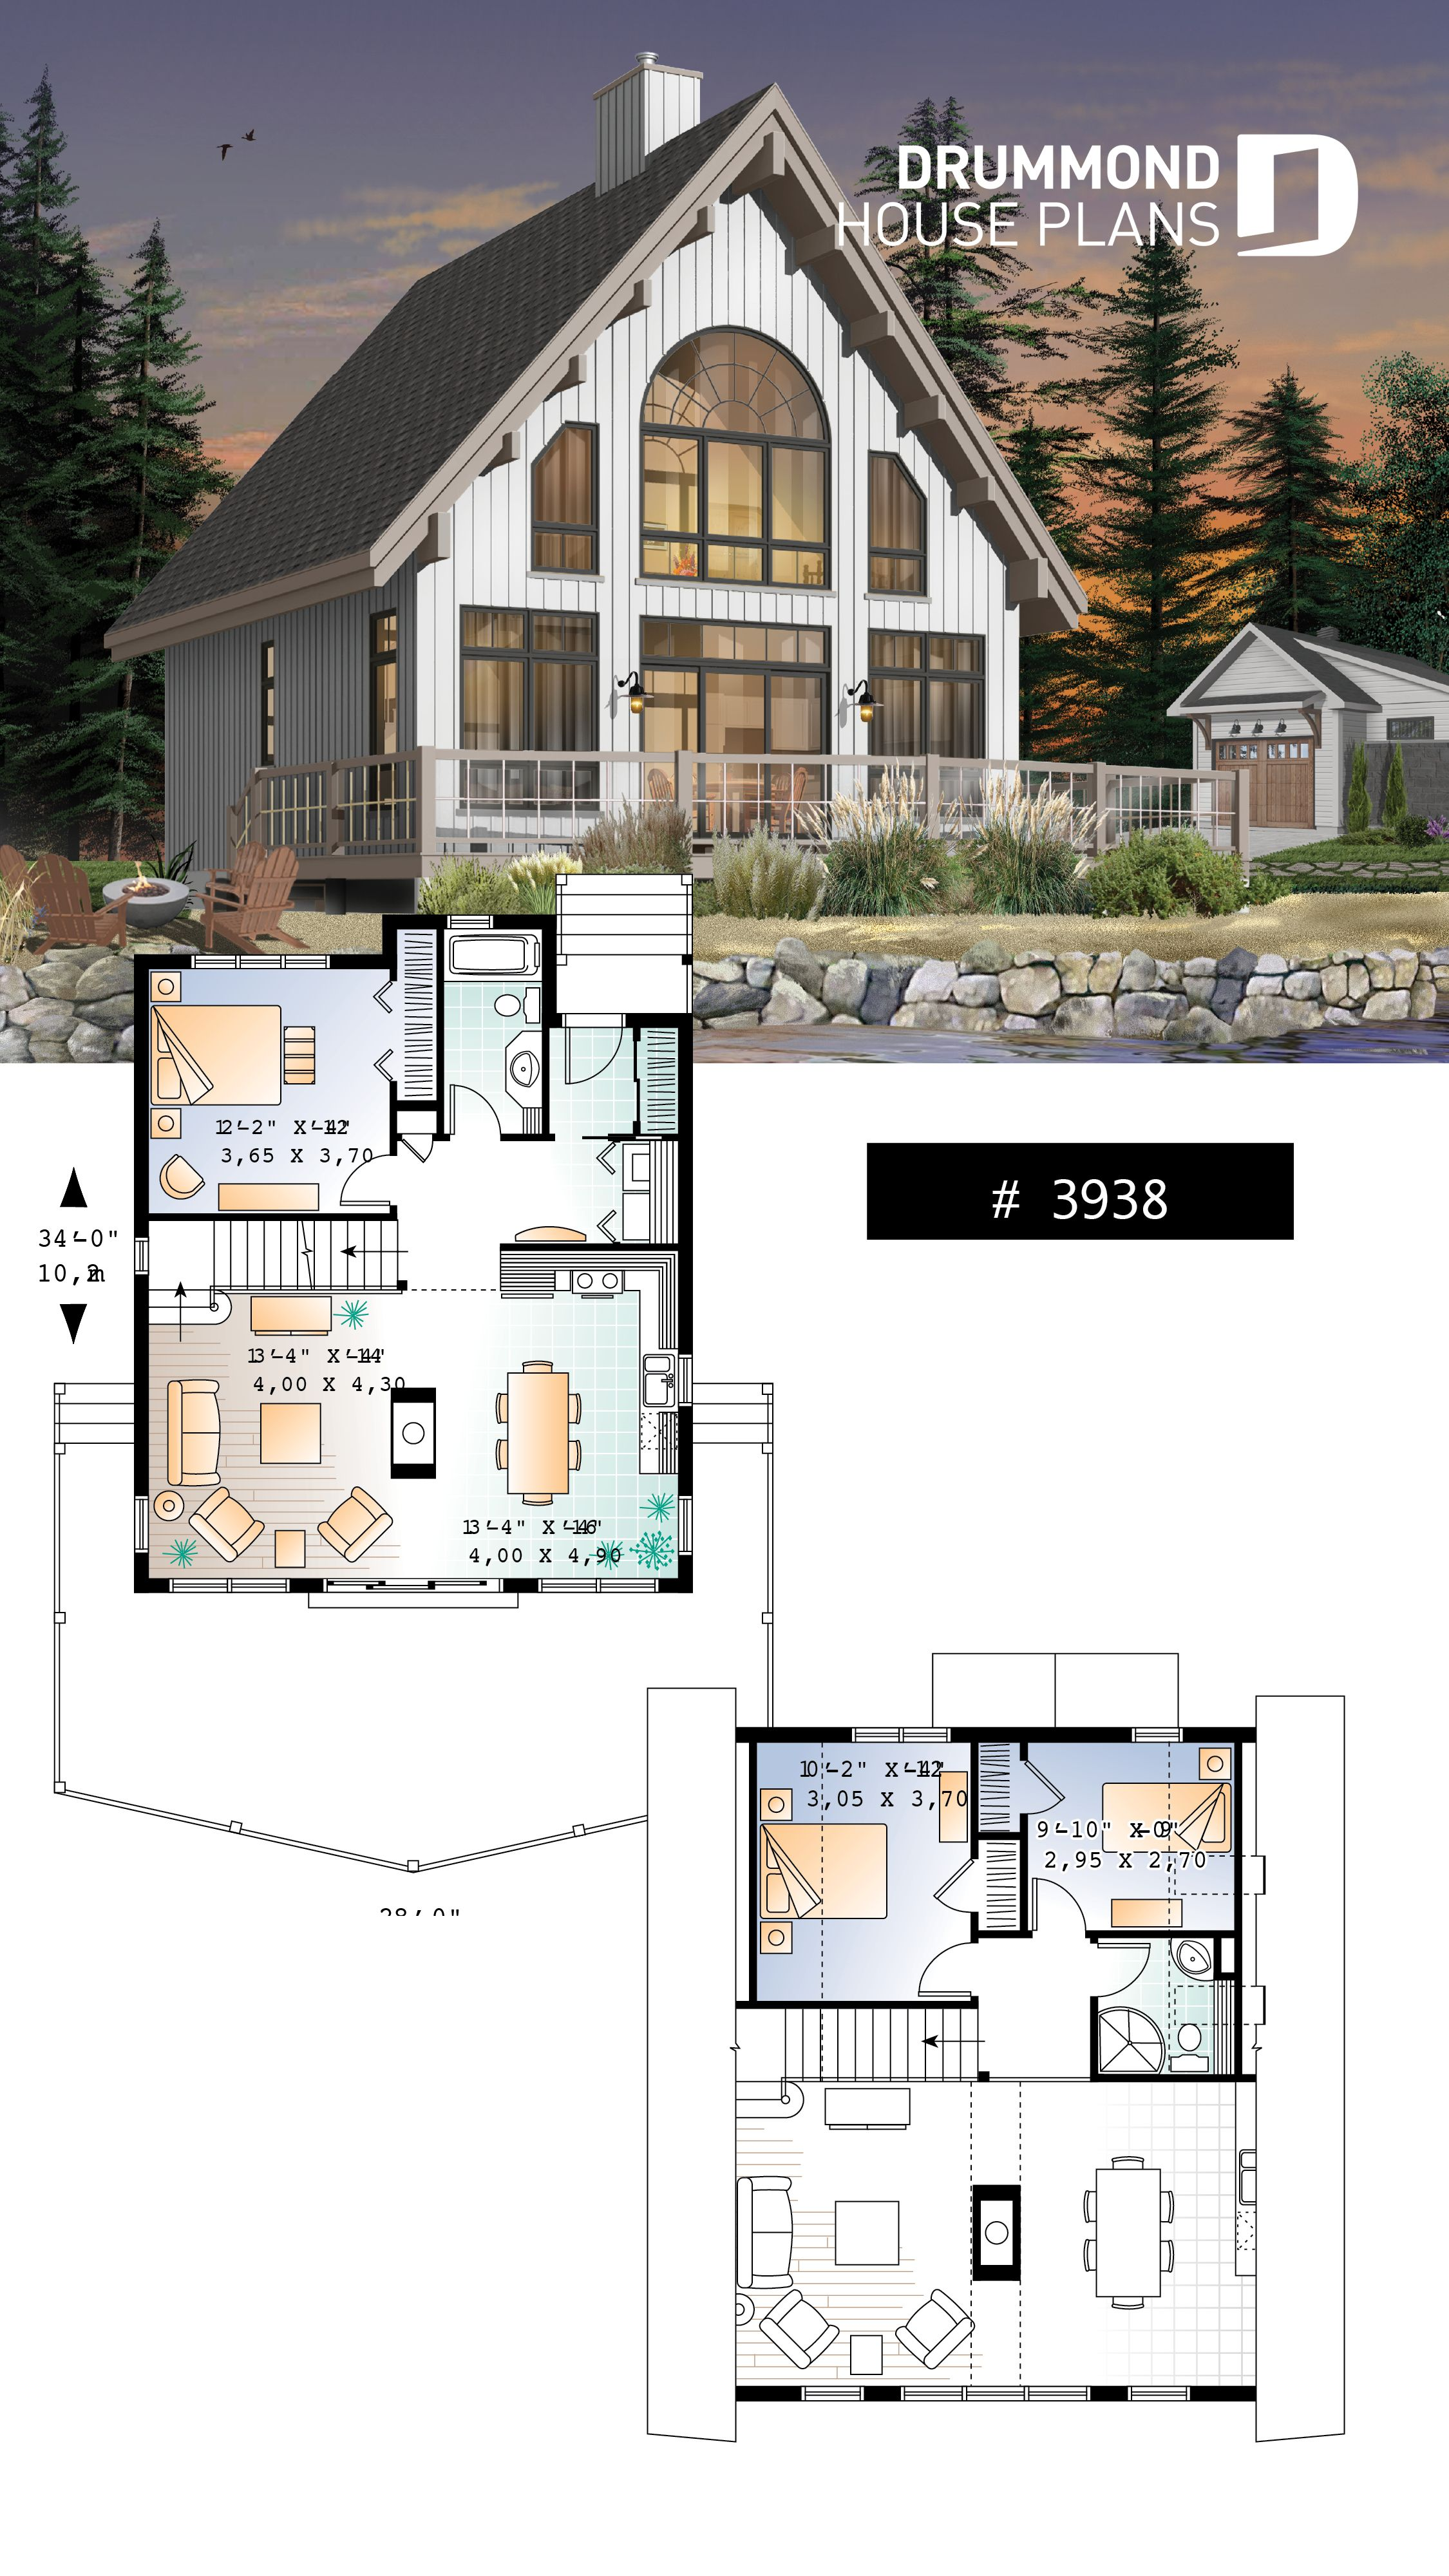 A Frame wood cabin house plan with mezzanine and open